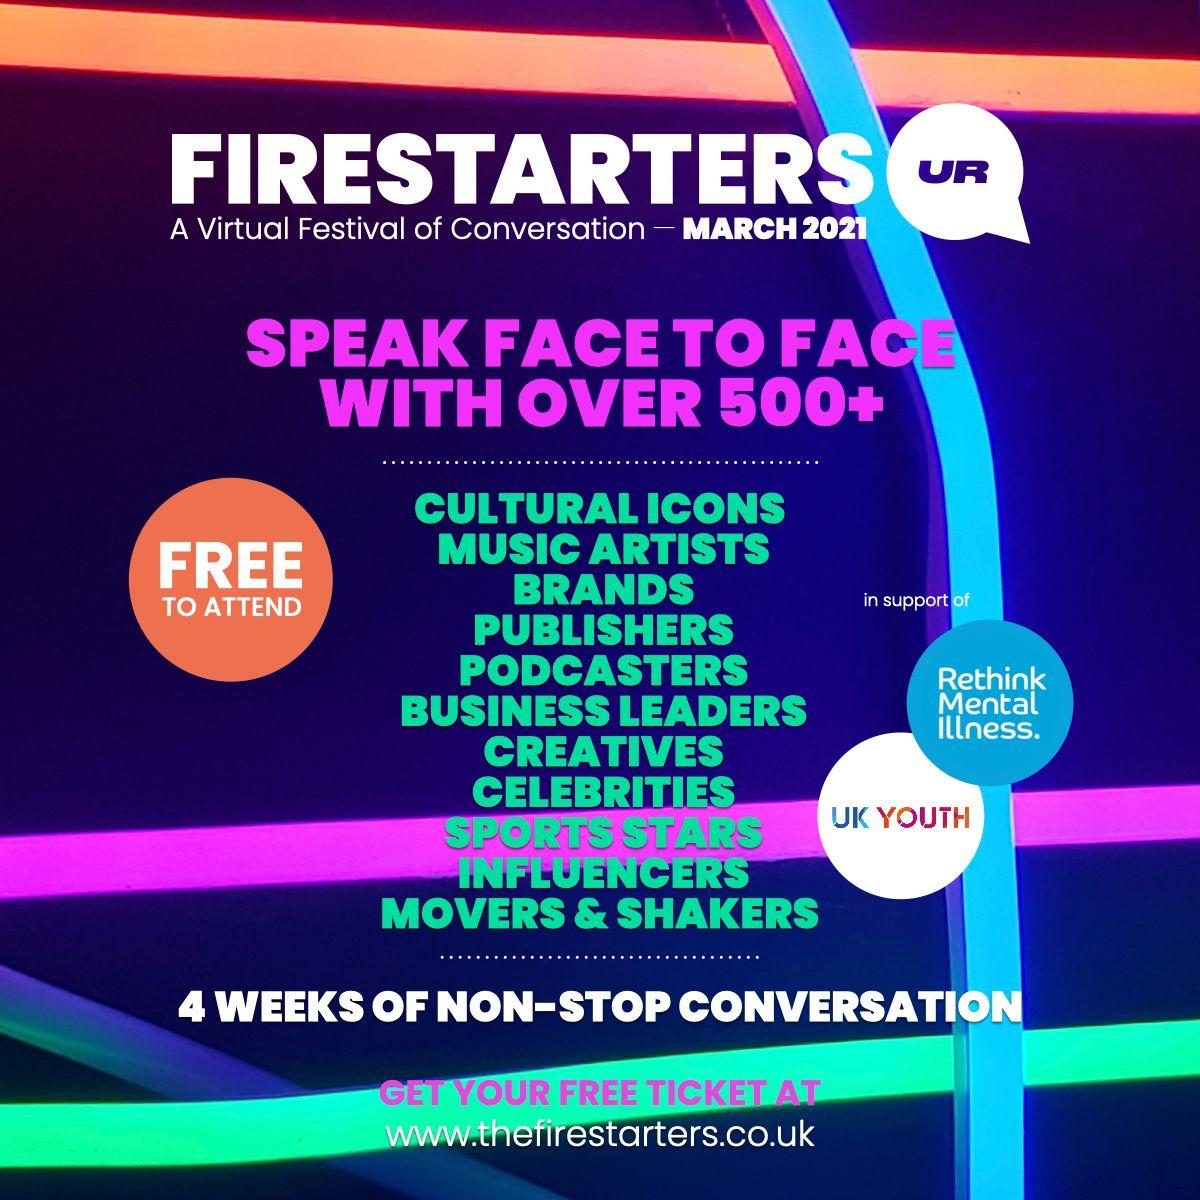 Firestarters: a virtual festival of conversation this March 17